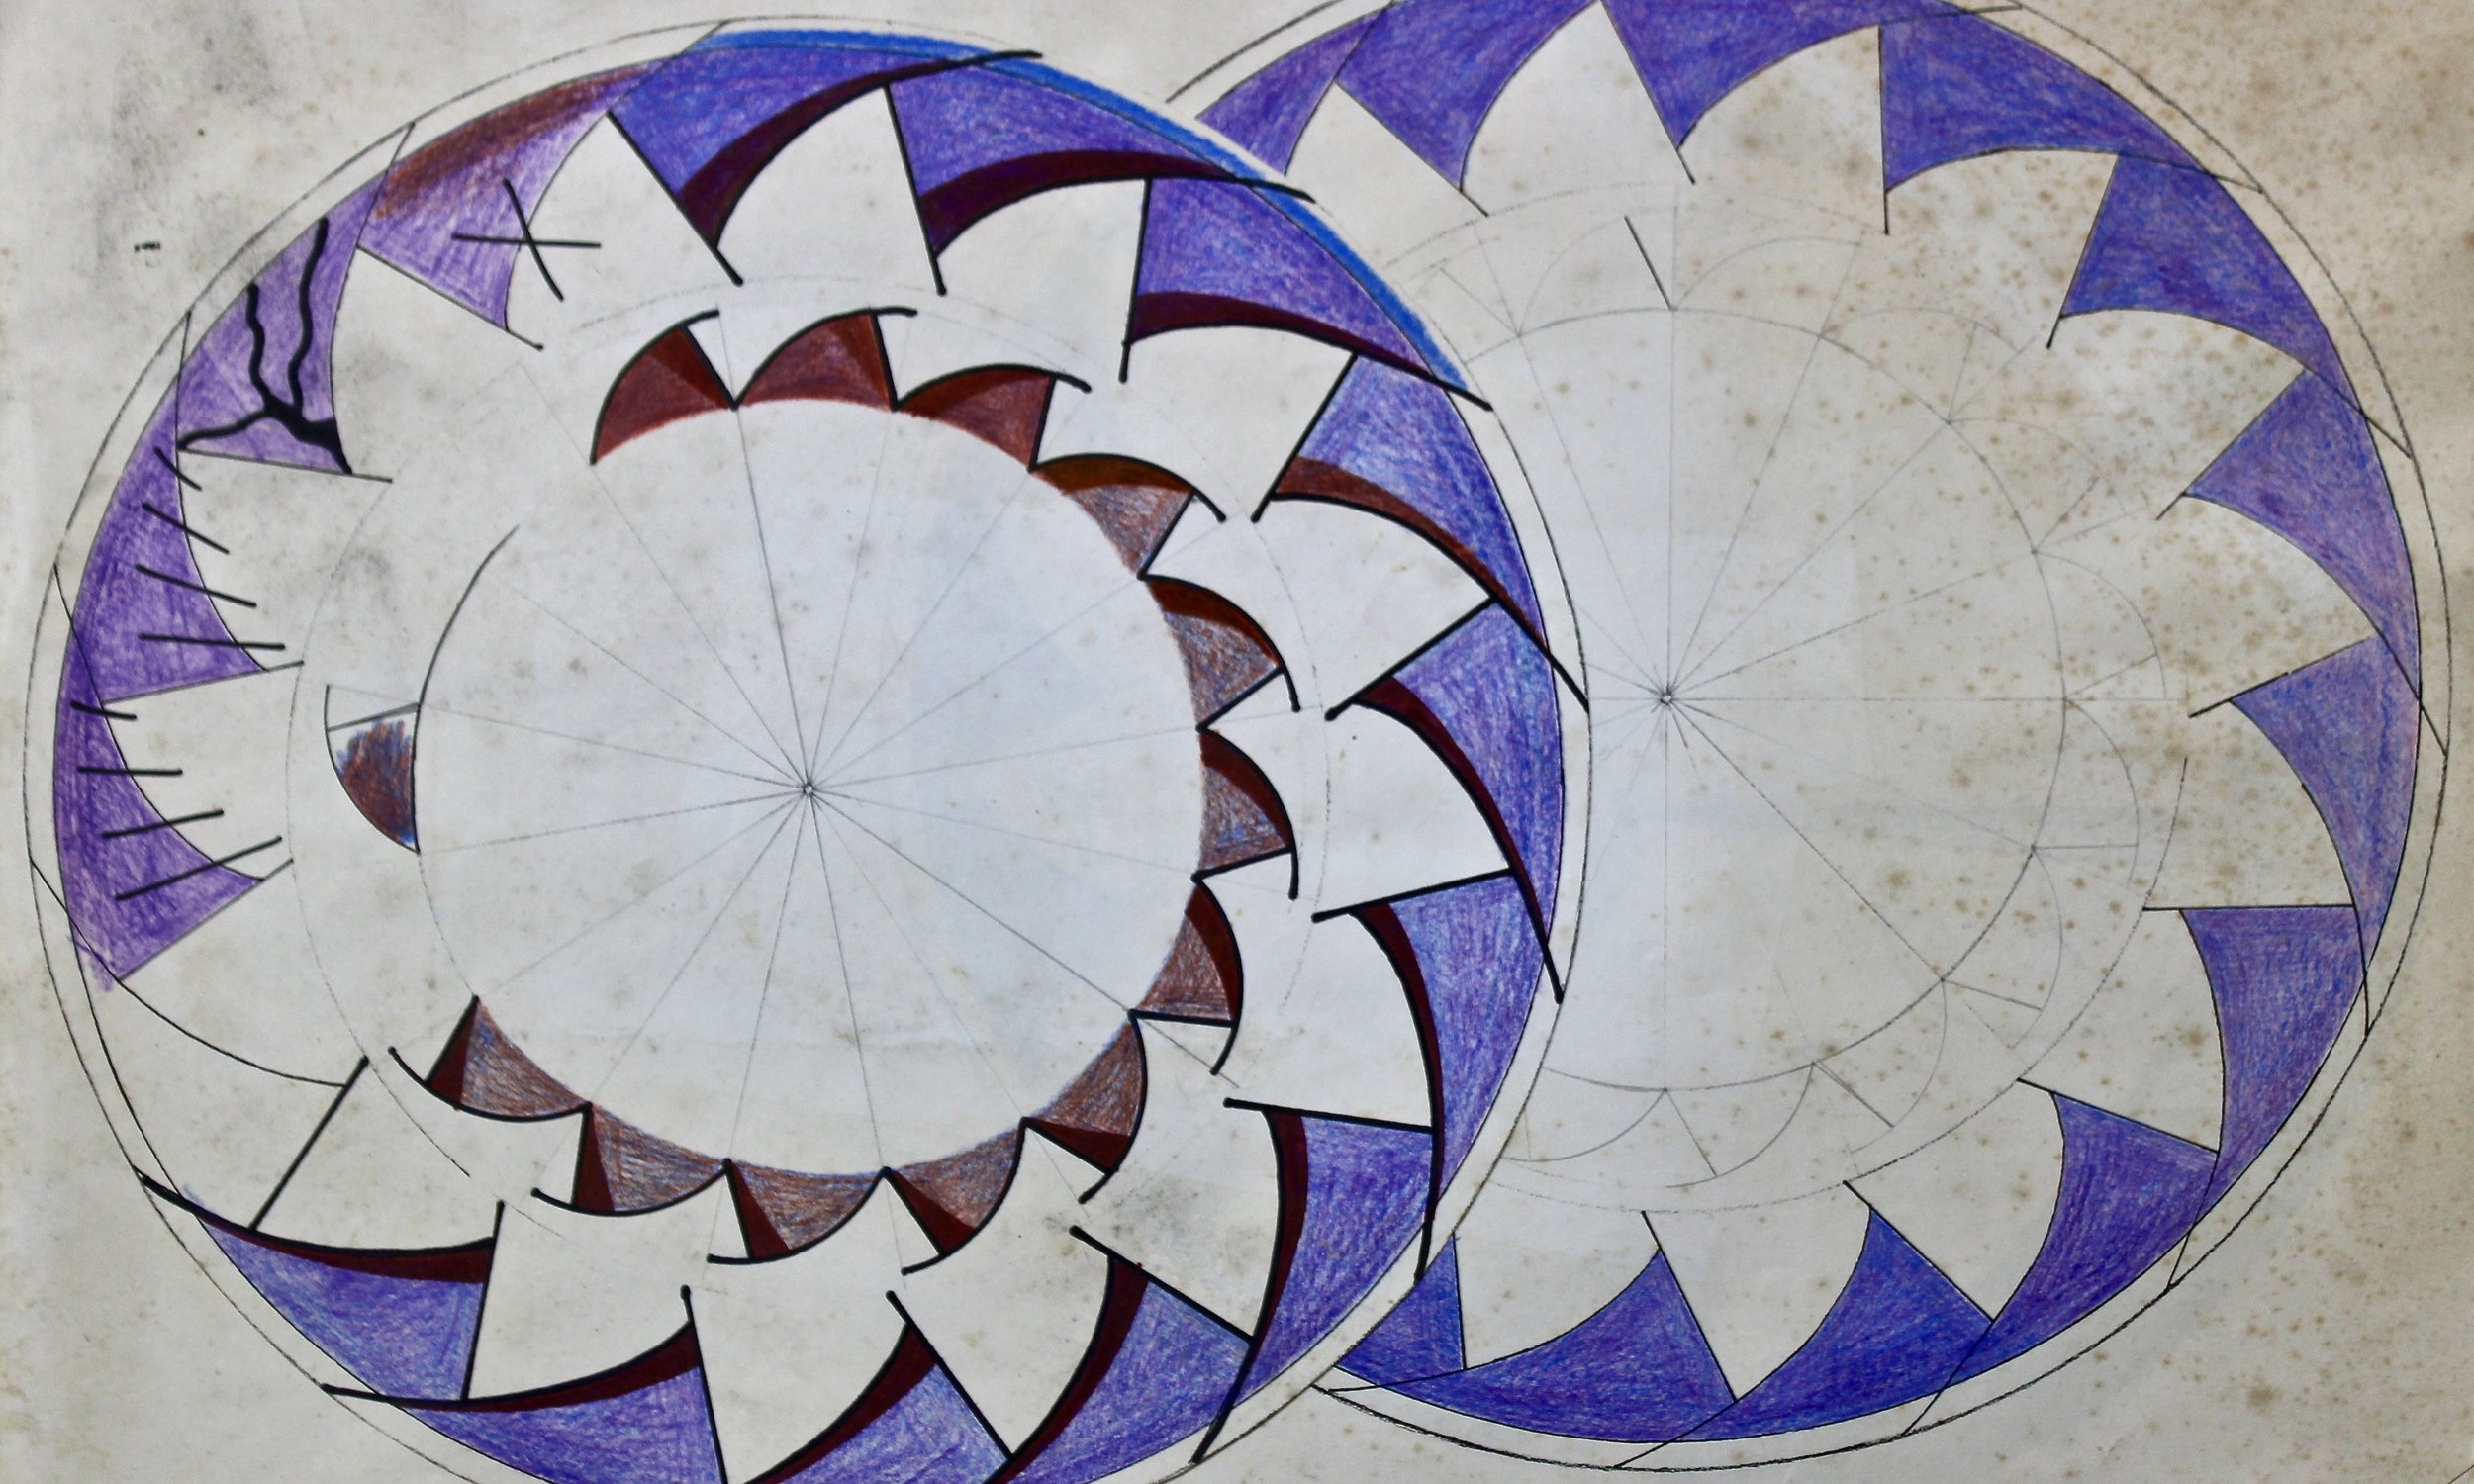 Aztec Plate Design -  1991 ink and pencil on paper 30cm x 60cm